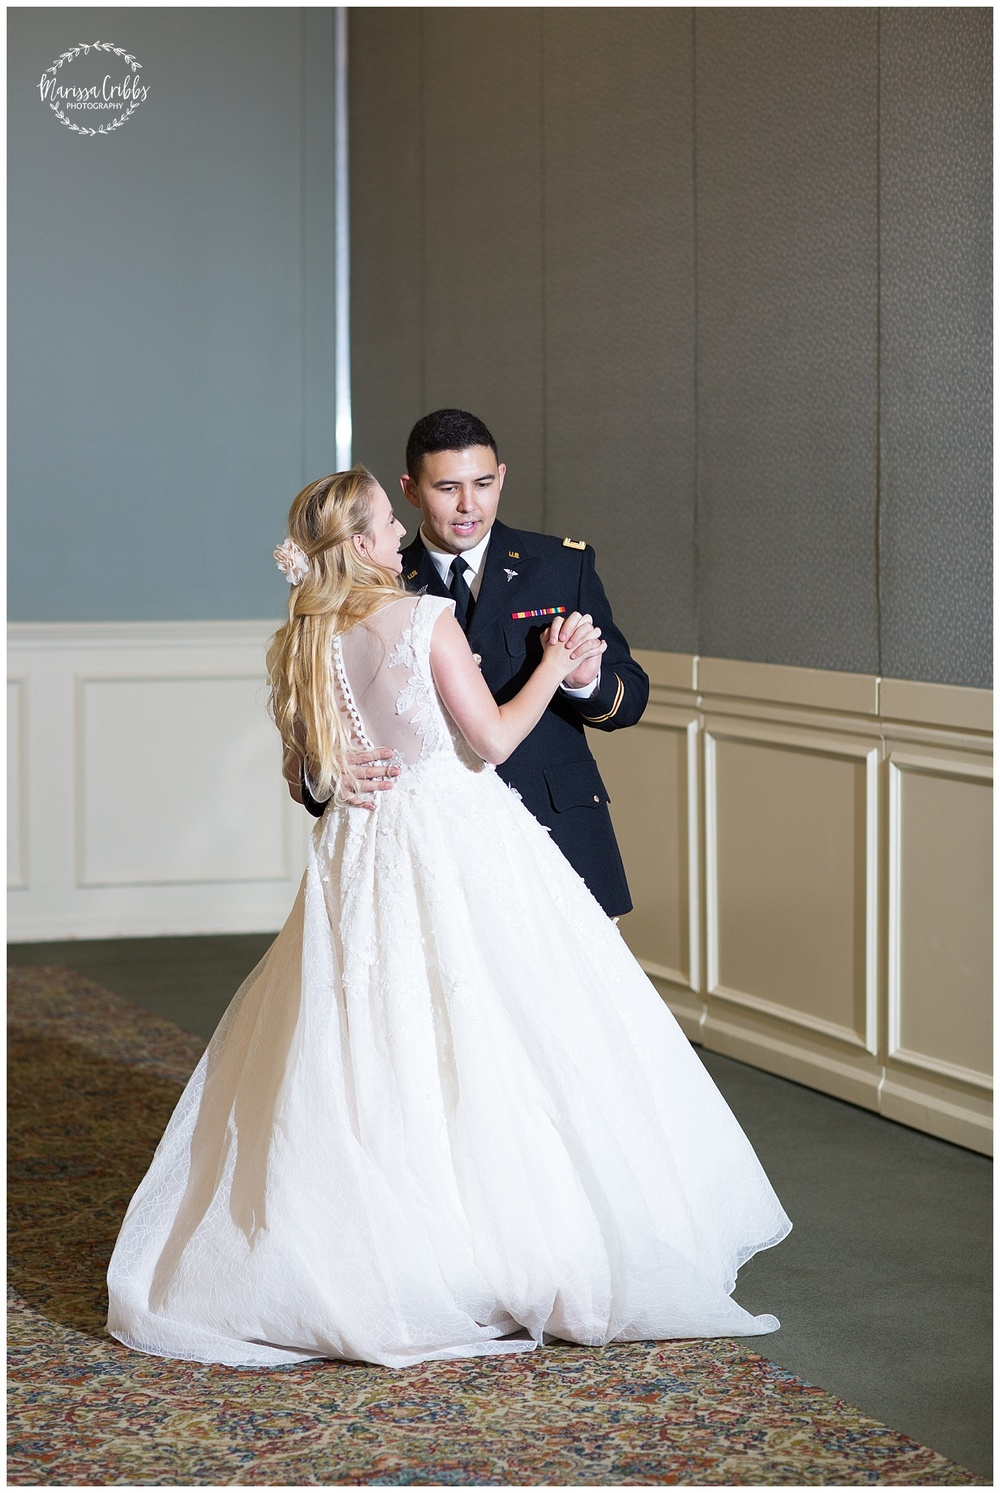 Jimenez Wedding | Marissa Cribbs Photography_0304.jpg